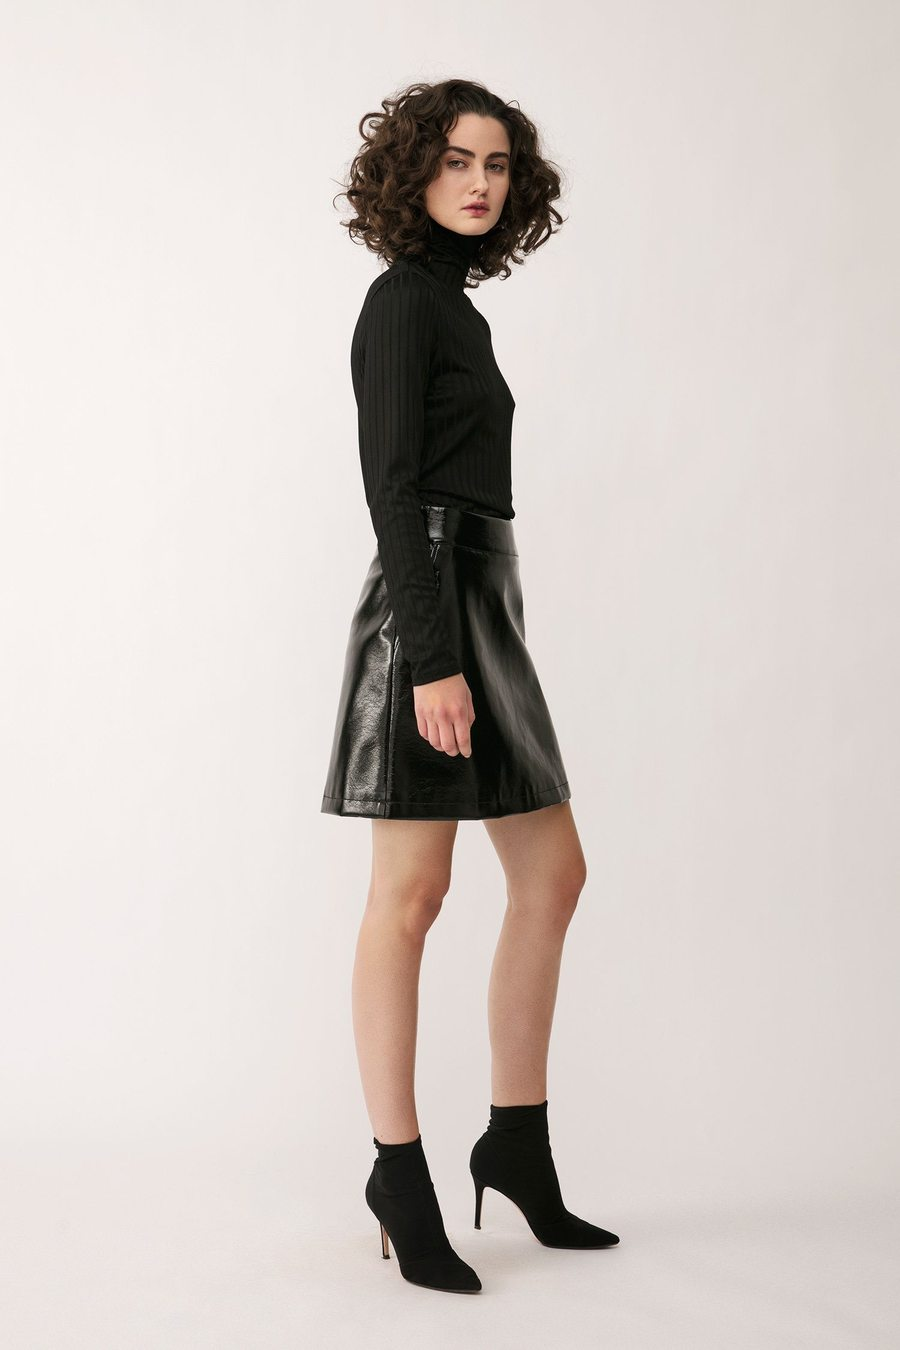 Stylein Valeri Skirt Black - Mojo Independent Store